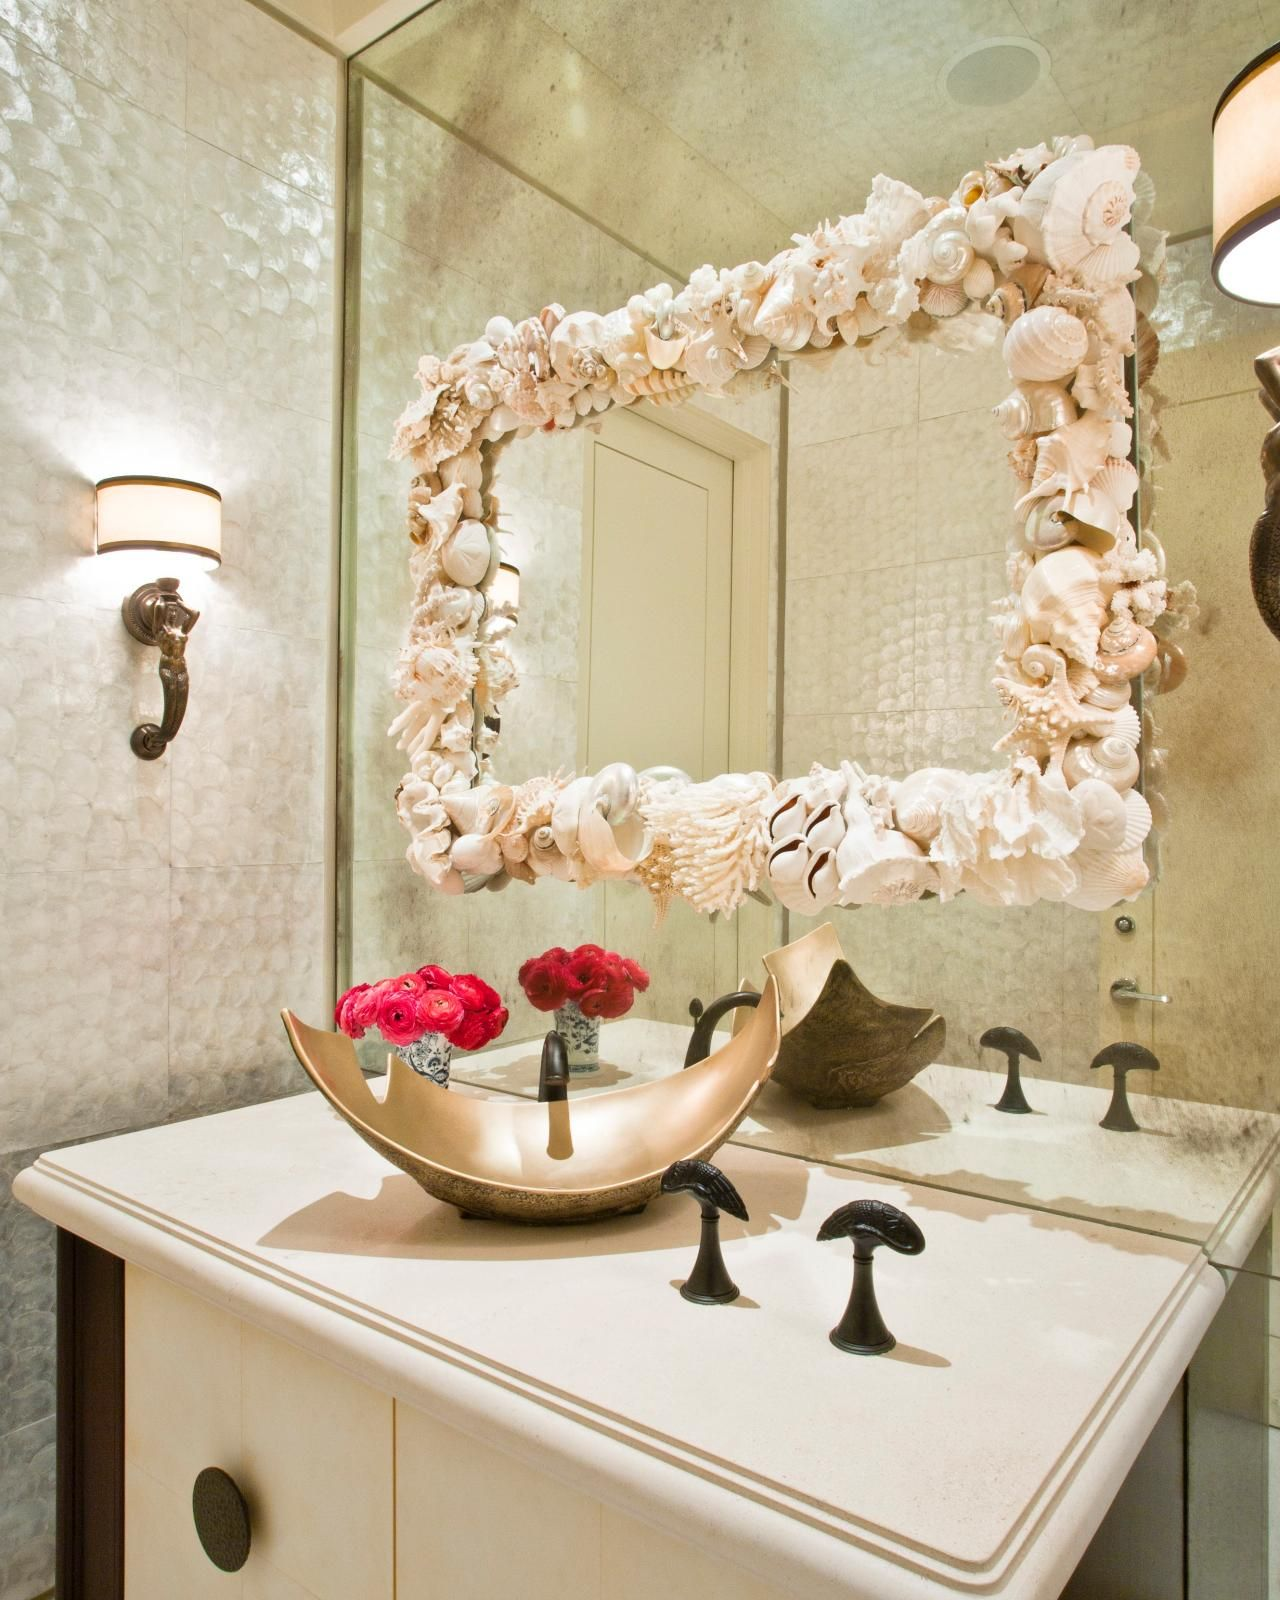 A Seashell Lined Mirror And Mermaid Shaped Sconces Lend A Coastal Vibe To  This